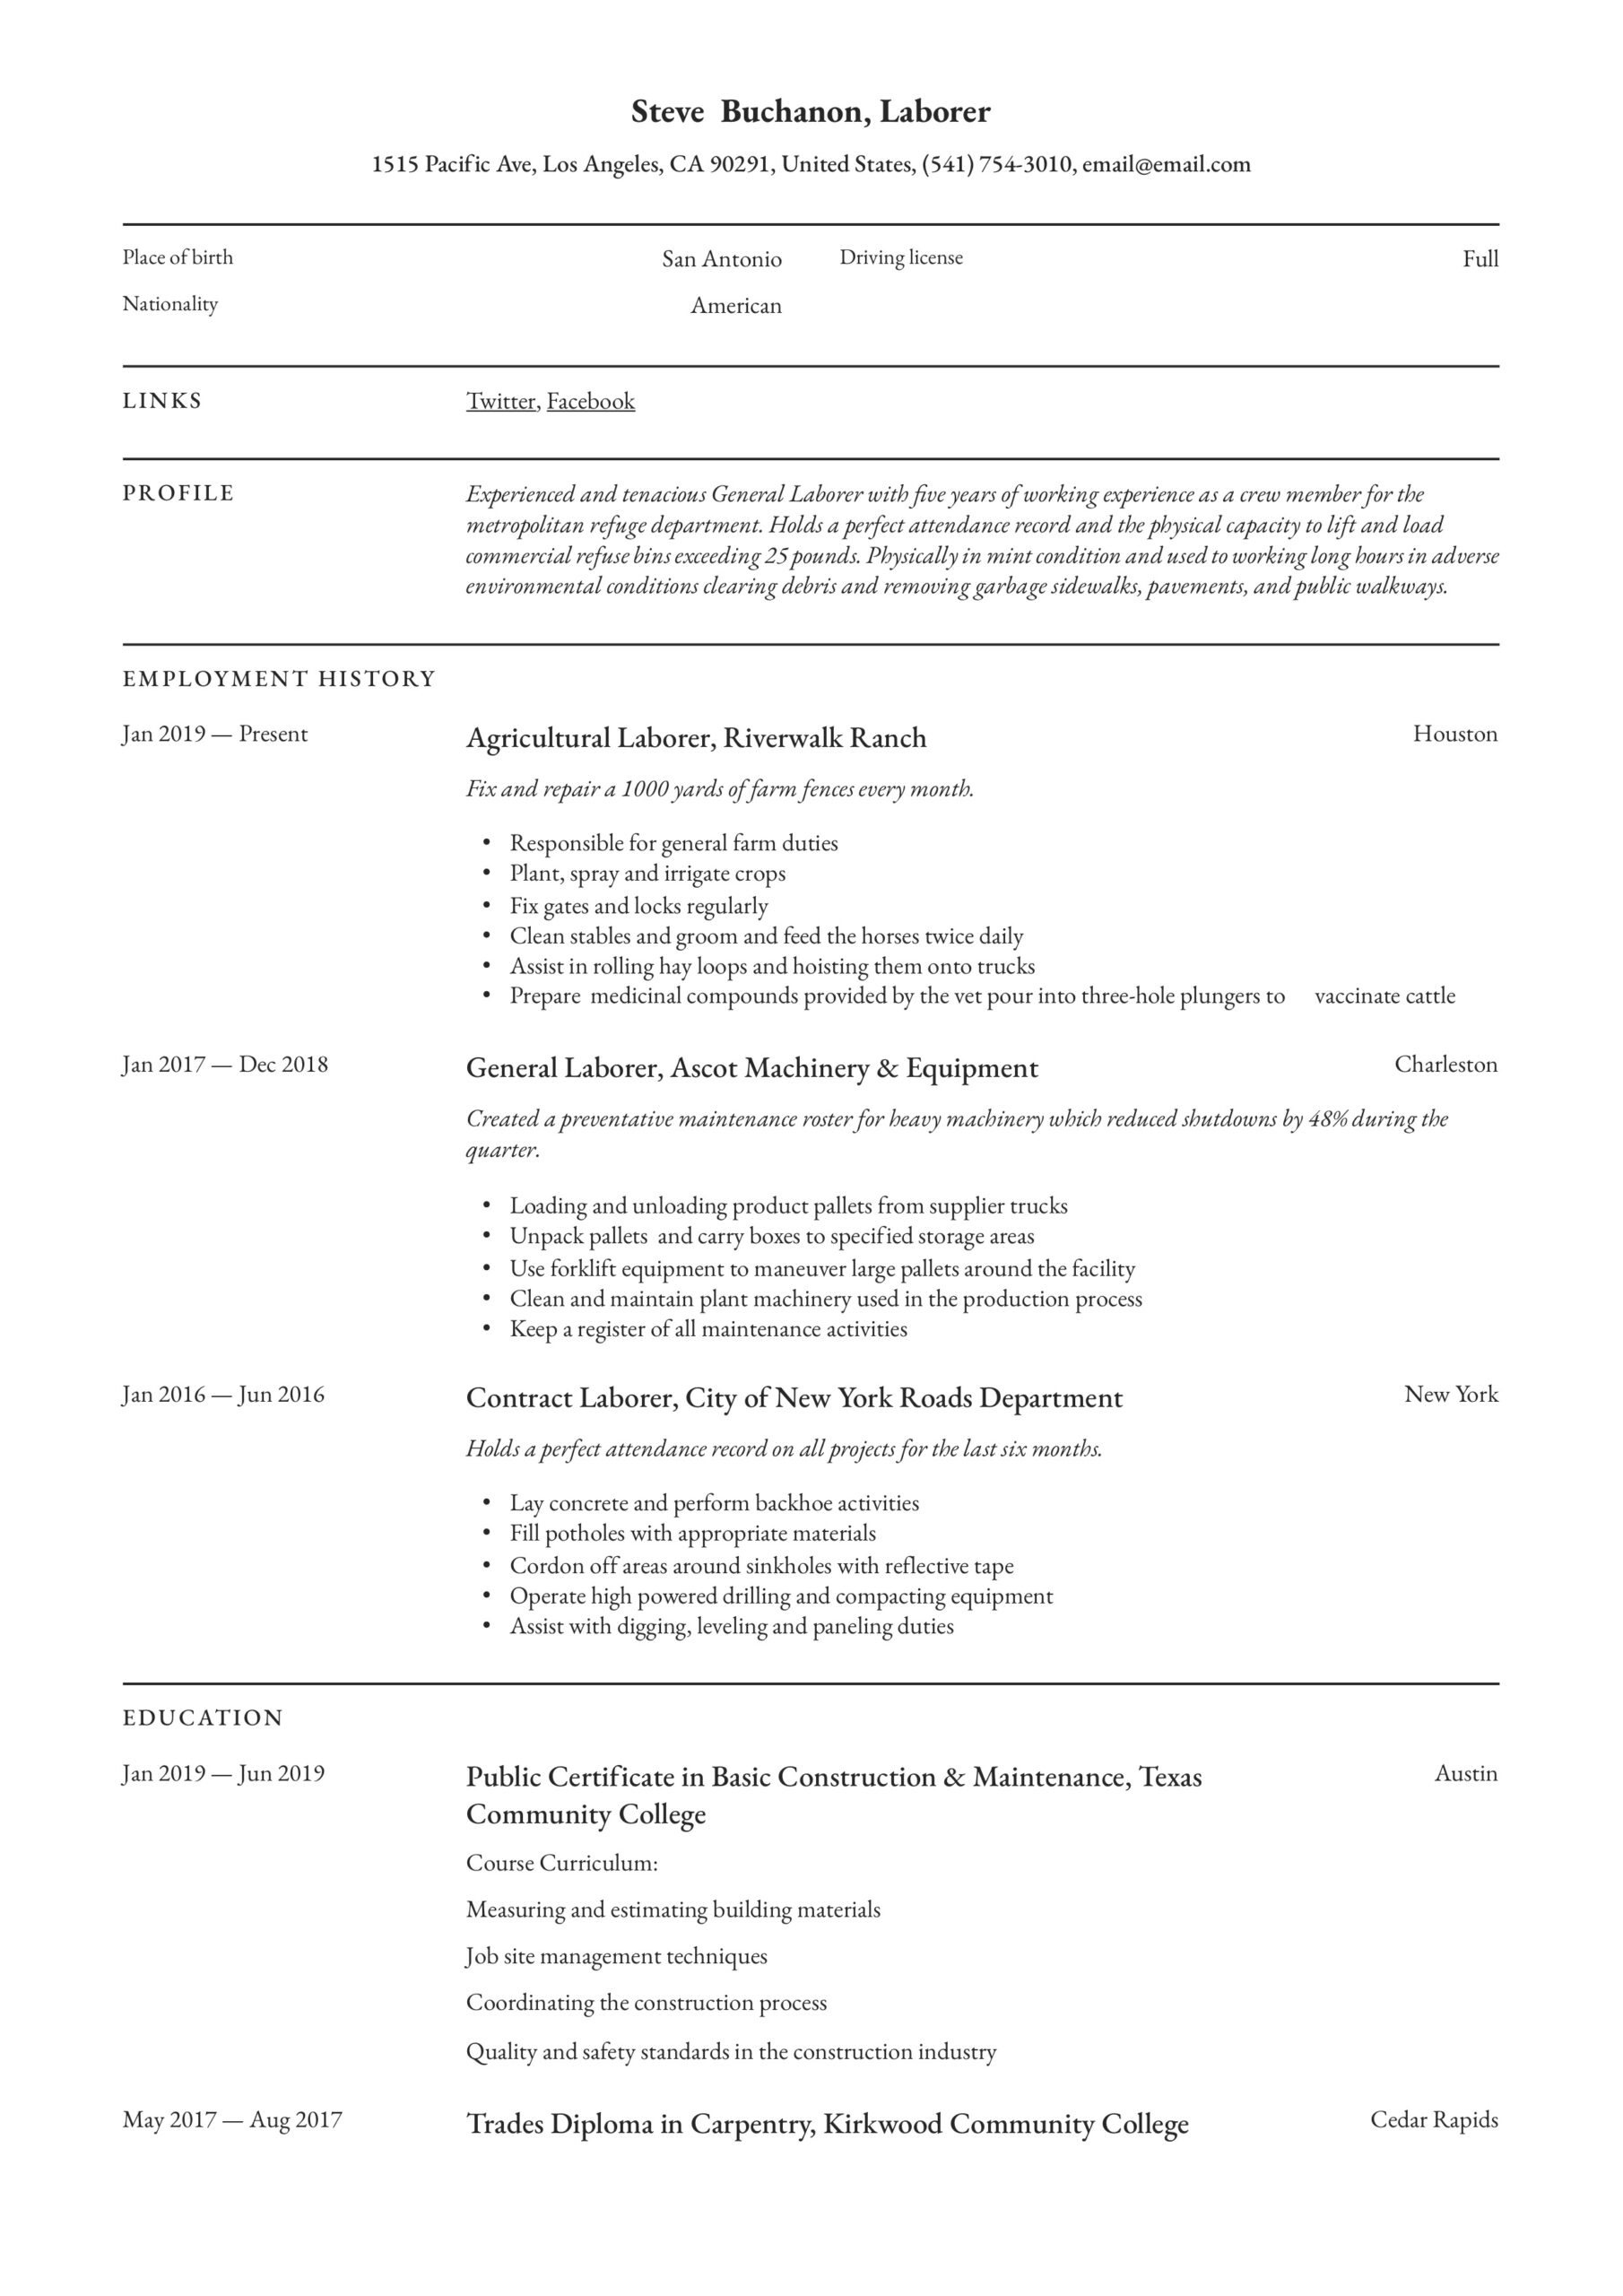 general laborer resume writing guide free templates labor summary example massage Resume General Labor Resume Summary Example